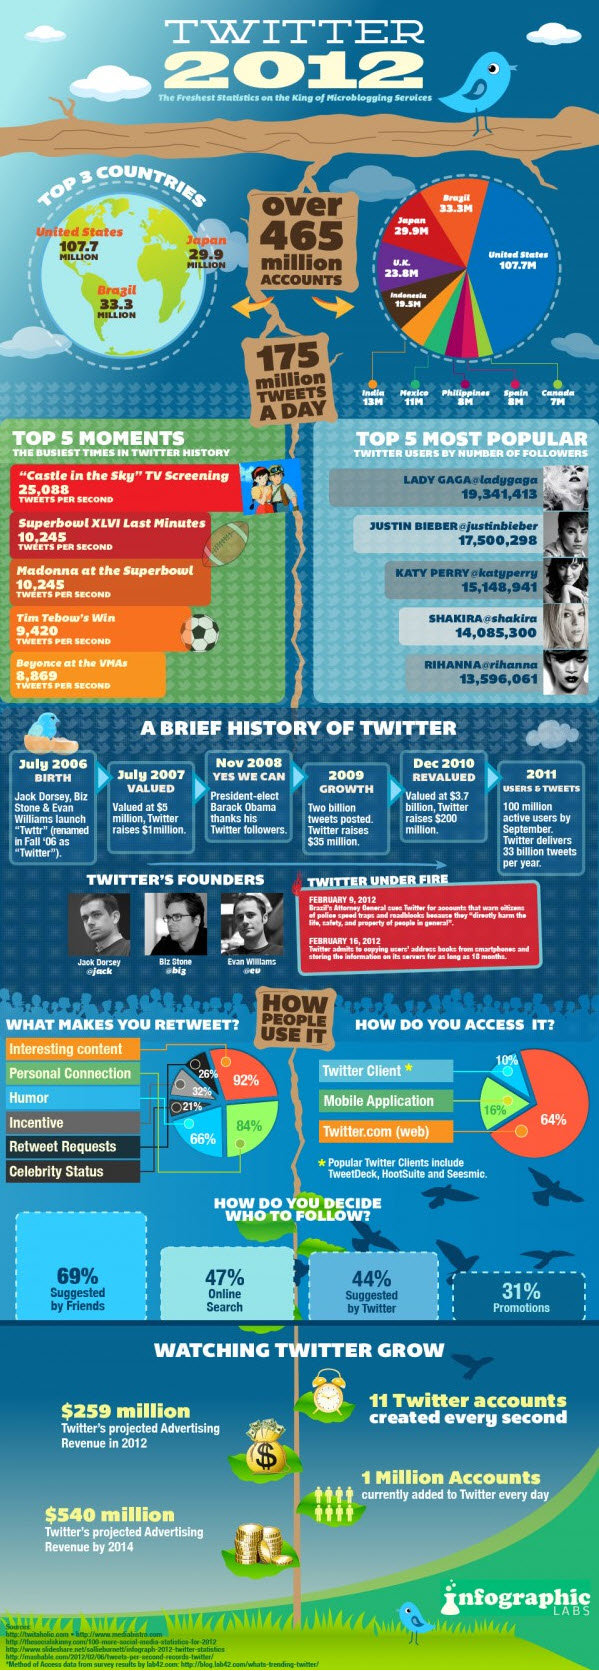 Twitter 2012 #infographic